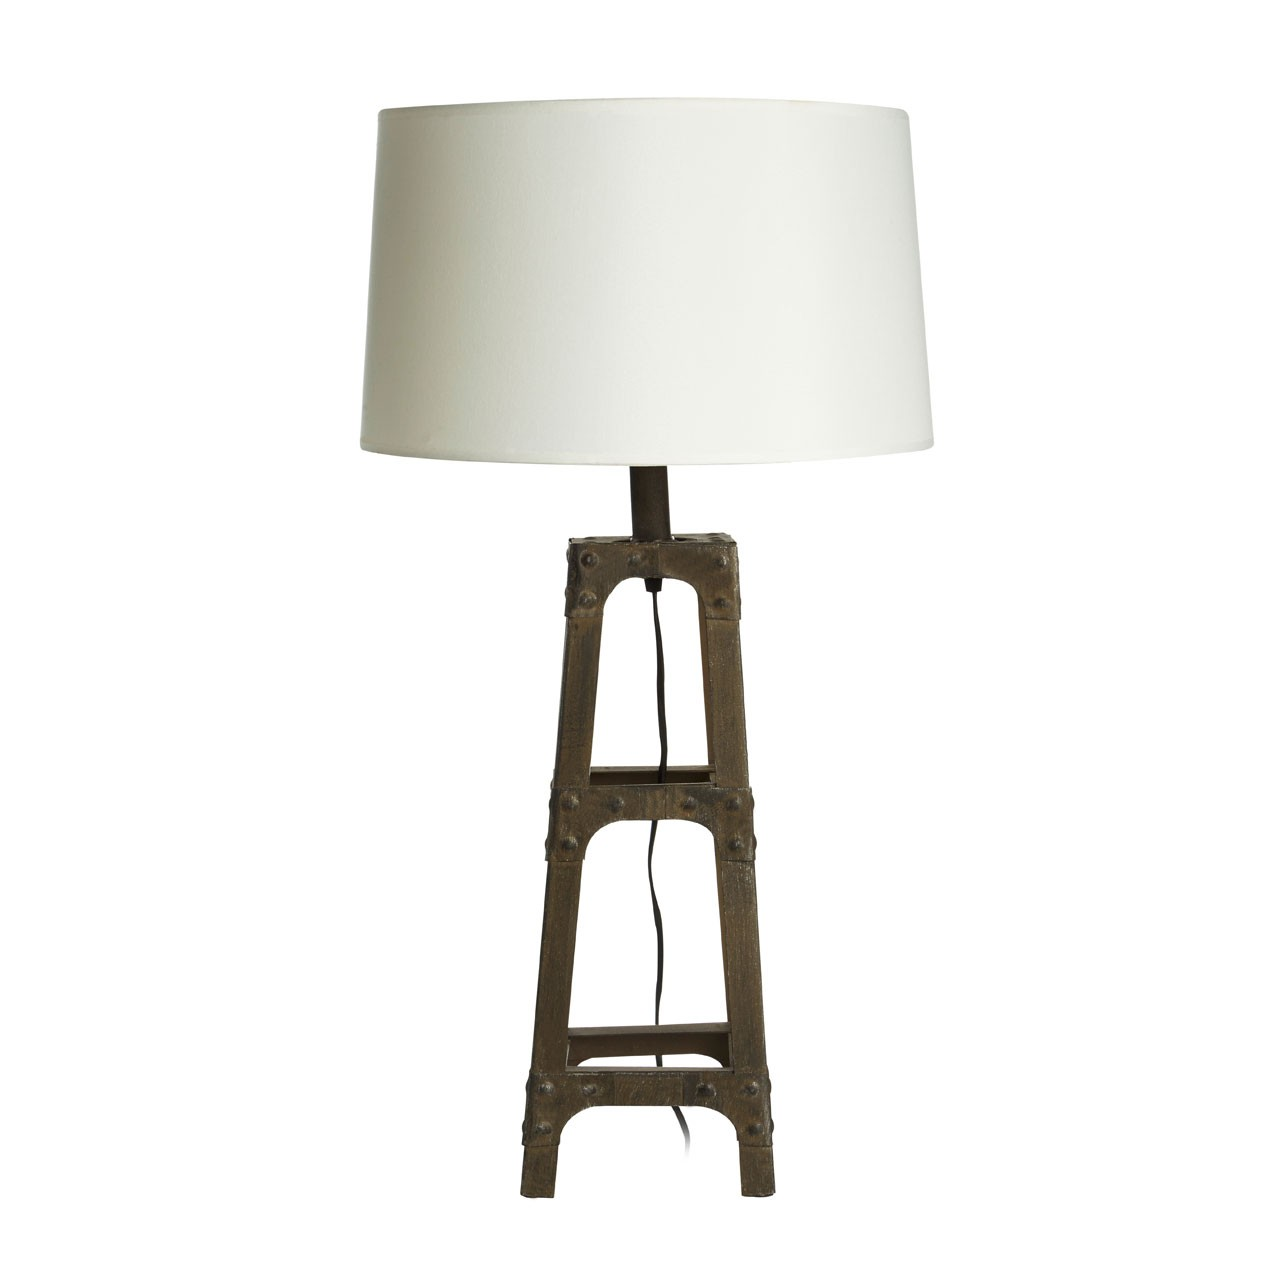 Prime Furnishing Table Lamp with Metal Scaffold - White